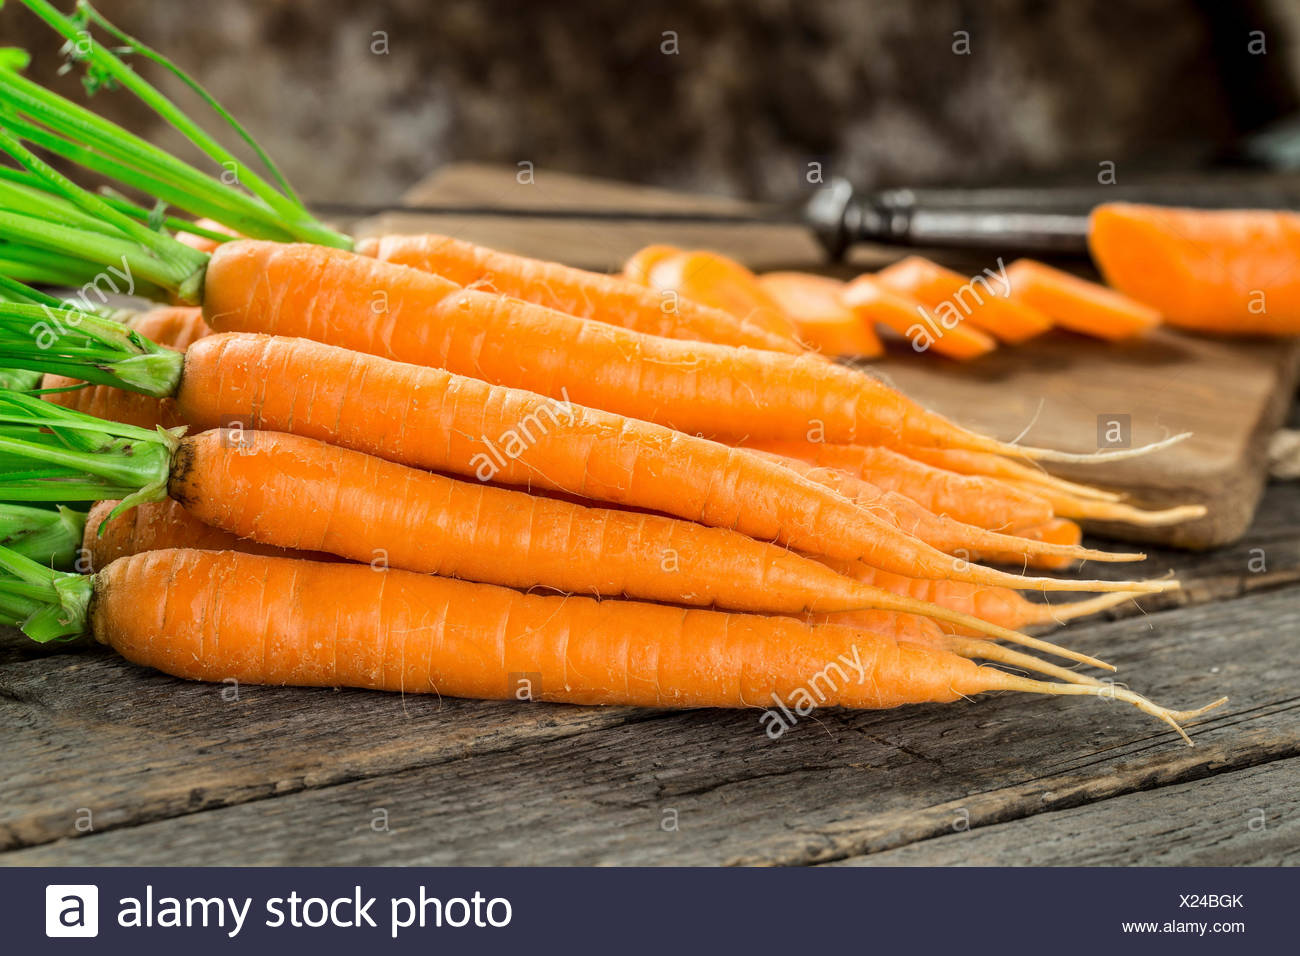 Fresh and sweet carrot on a grey wooden table - Stock Image